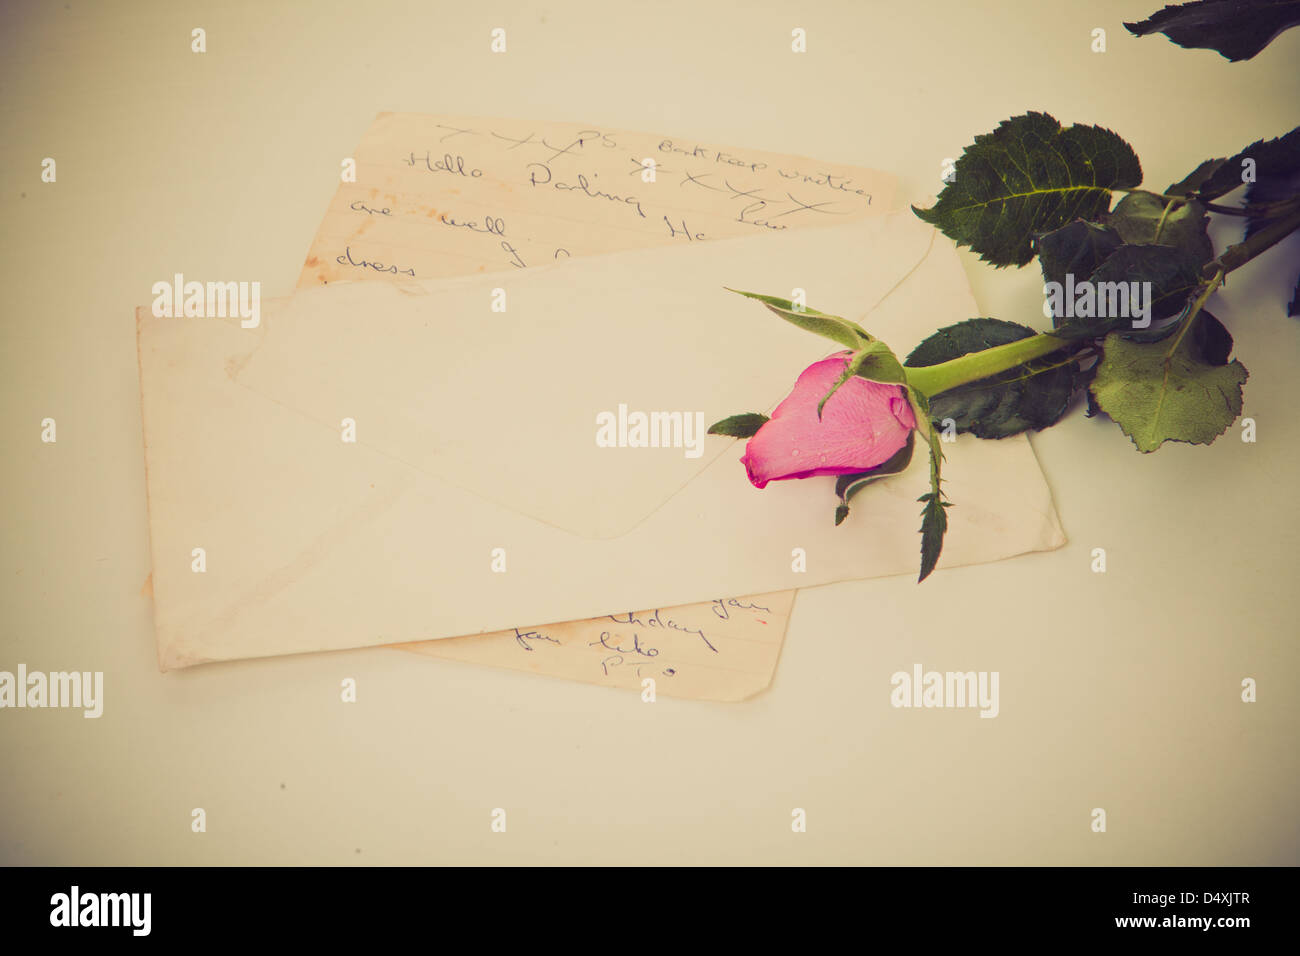 old retro vintage love letter with rose. - Stock Image